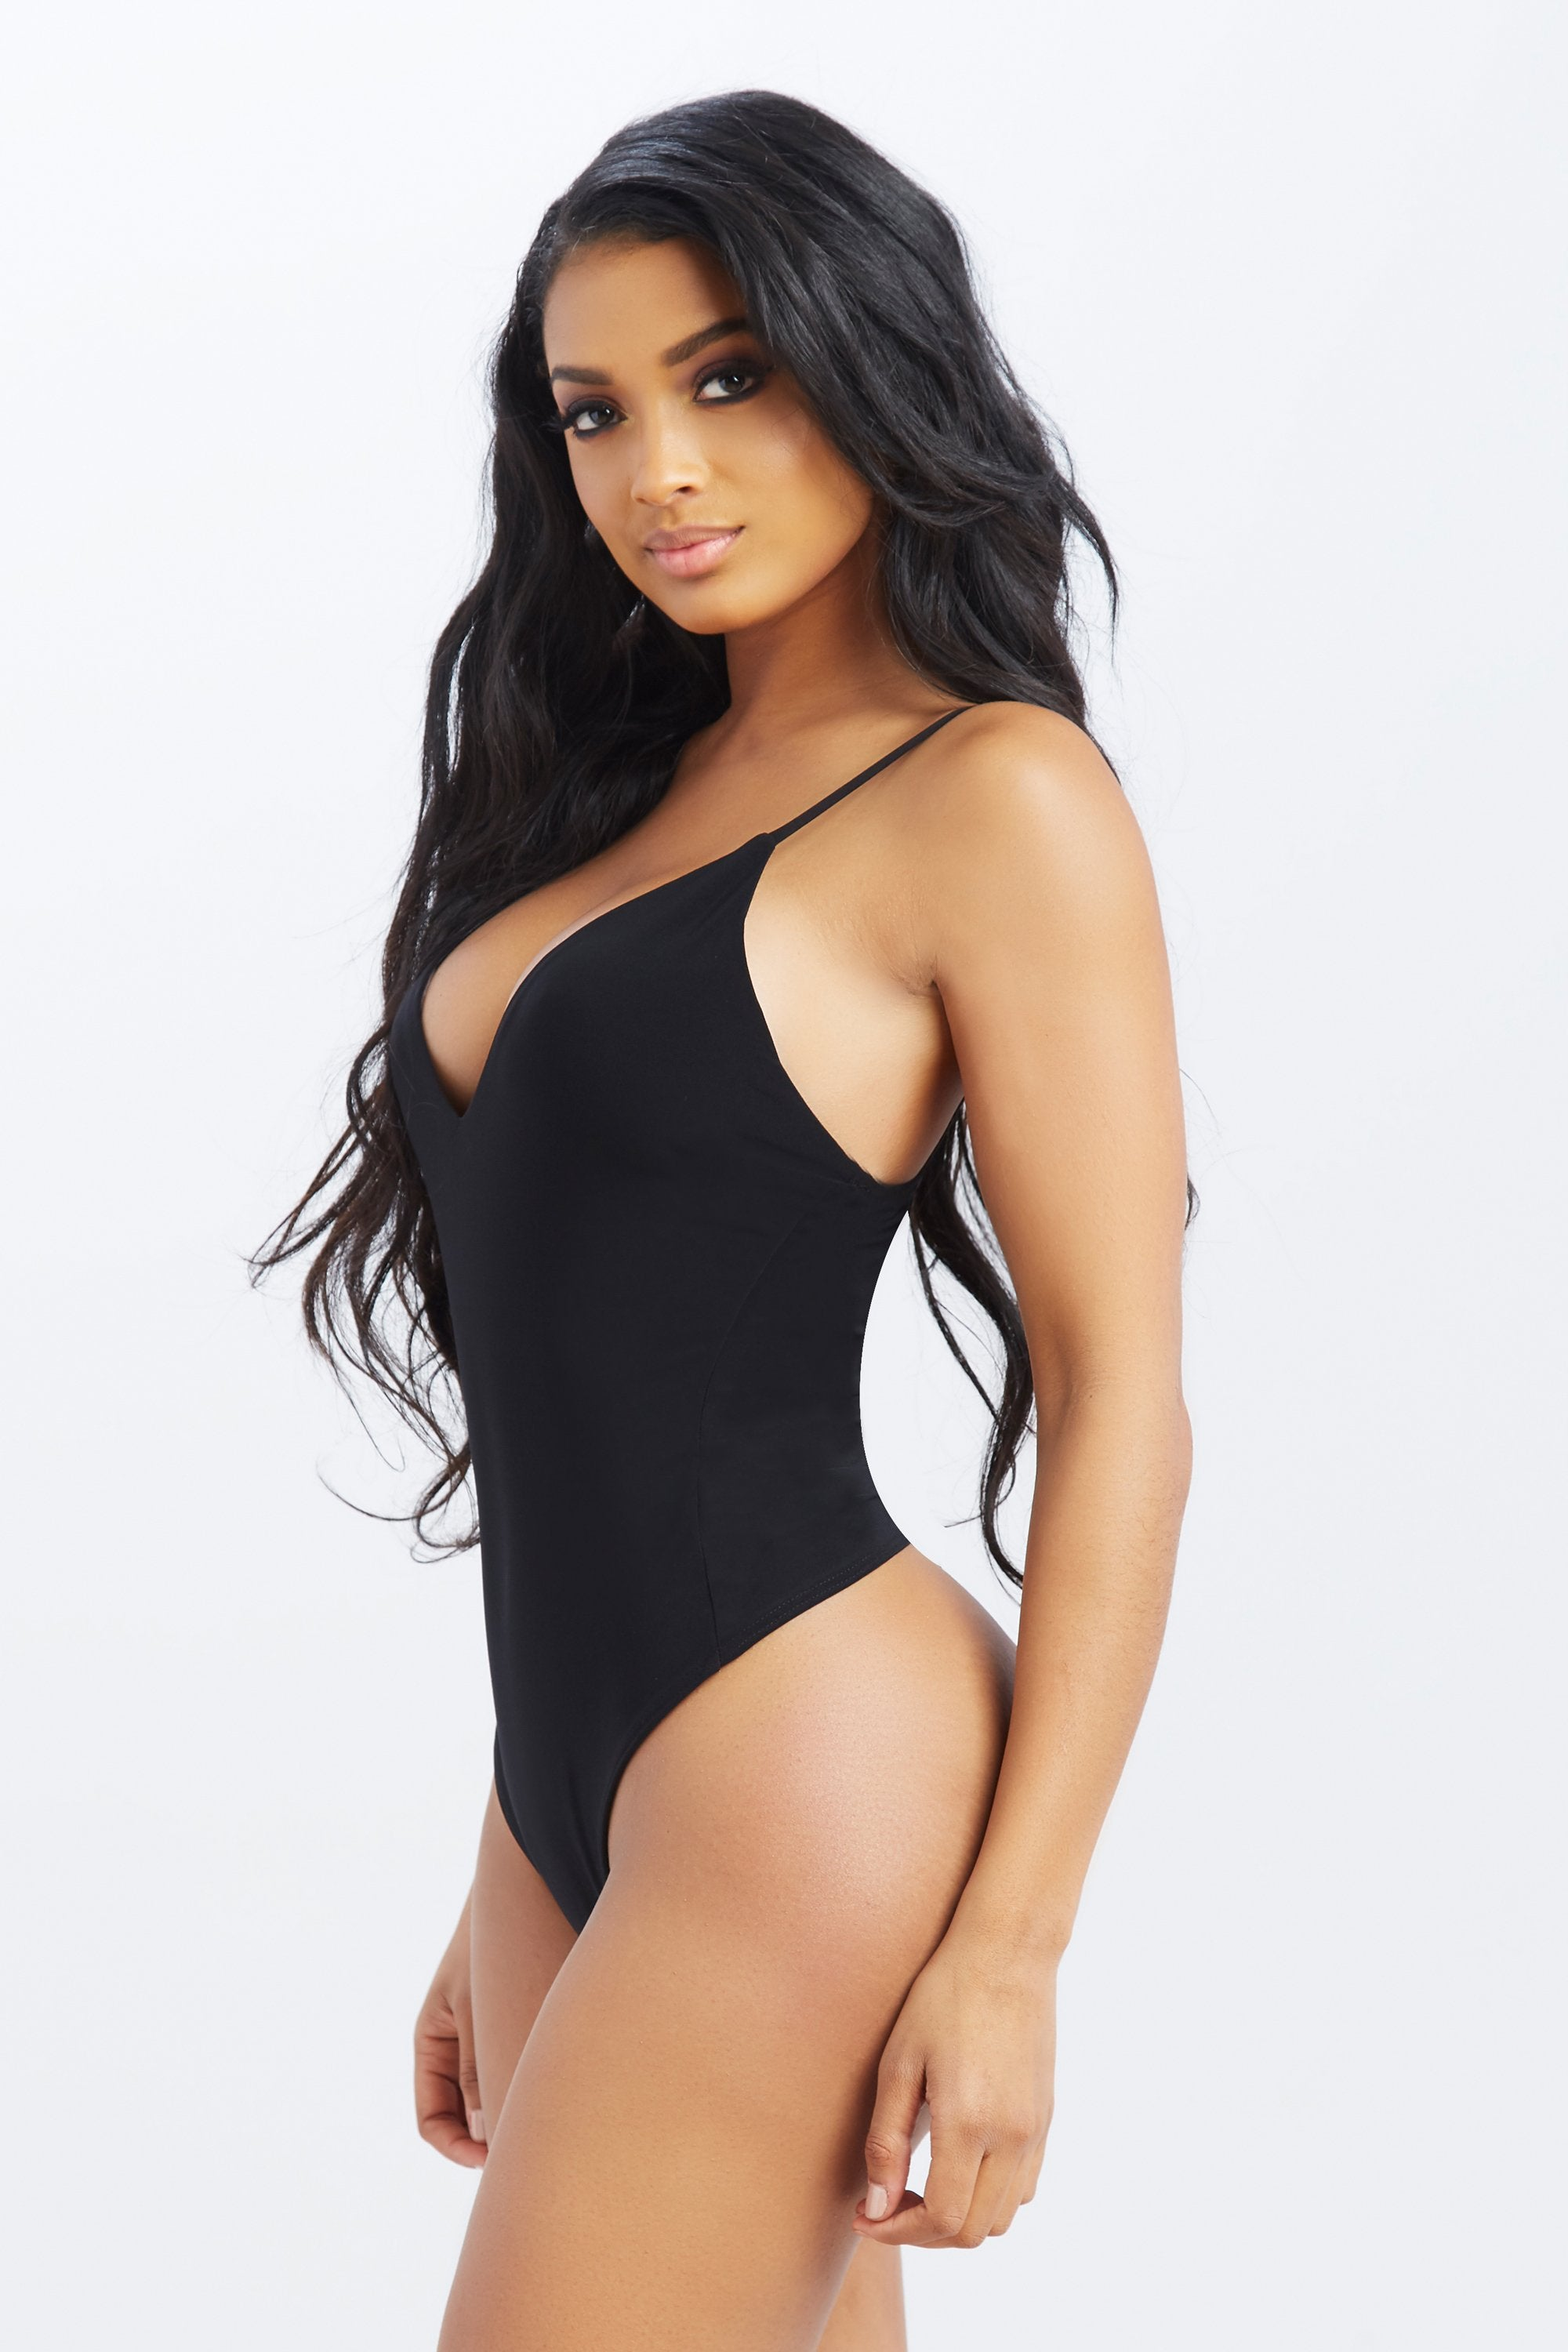 About A Girl Bodysuit